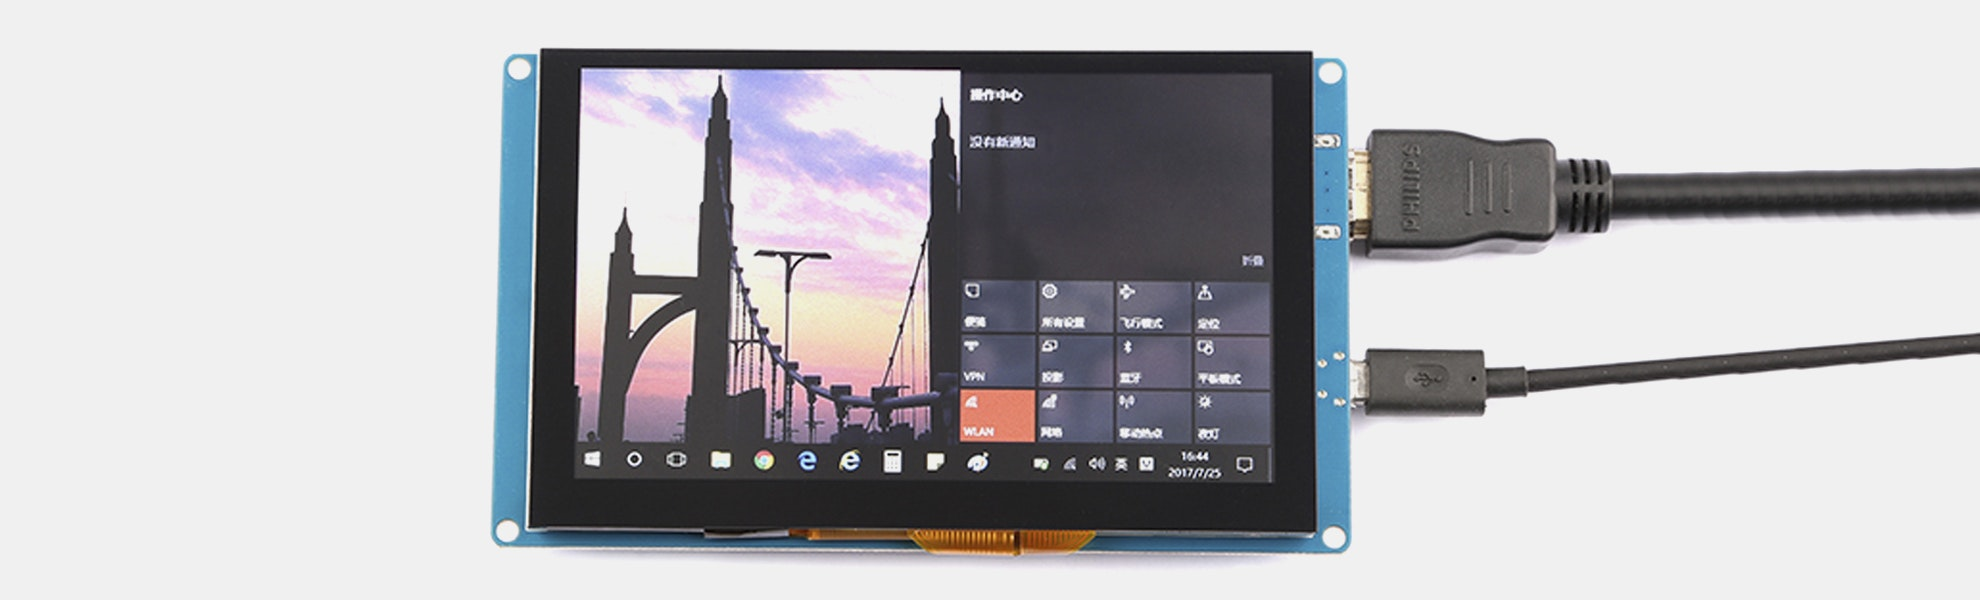 """Seeed 5"""" Capacitive Touchscreen for Raspberry Pi"""